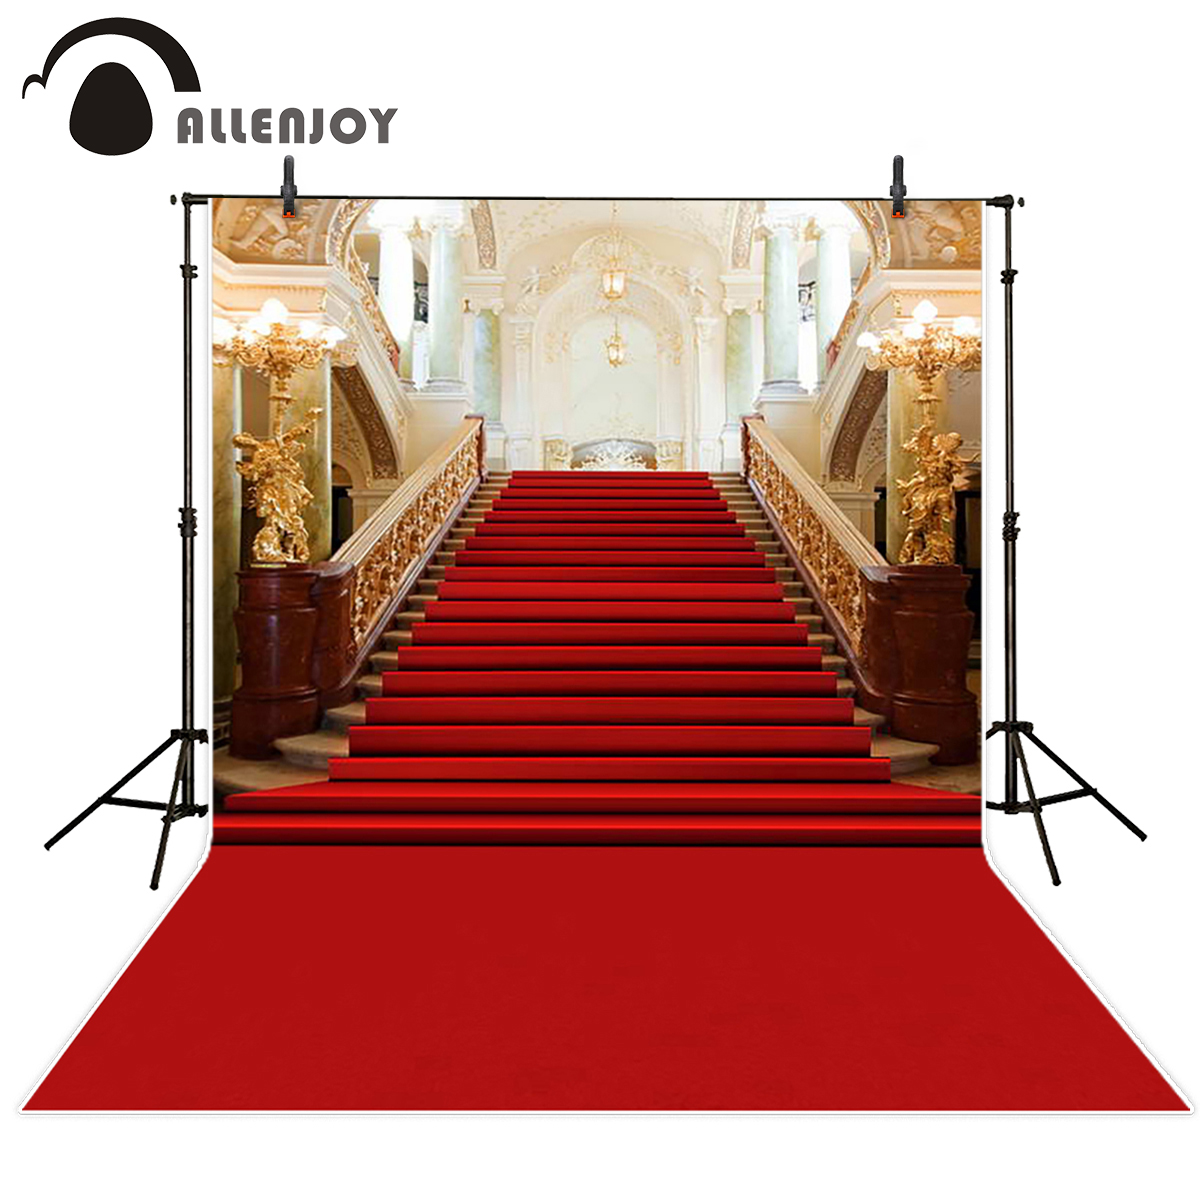 Allenjoy fond photographie palais tapis rouge escalier vintage décors professionnels photobooth studio de photo